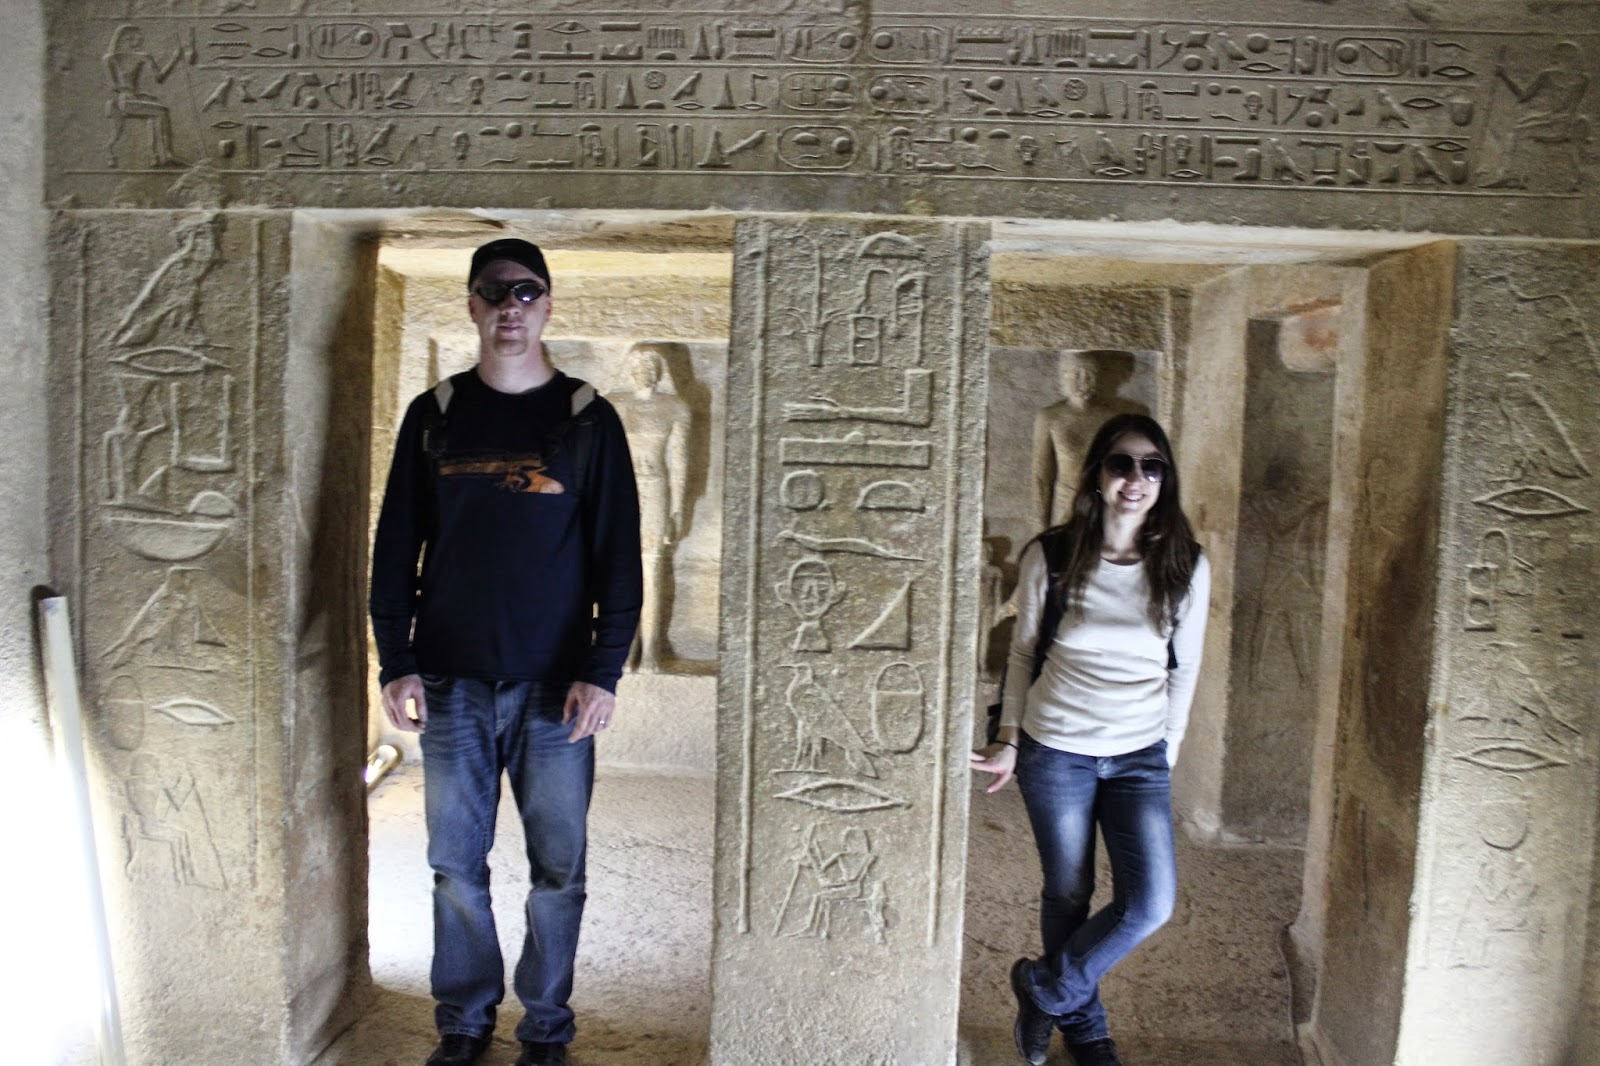 Inside the Great Pyramids of Giza